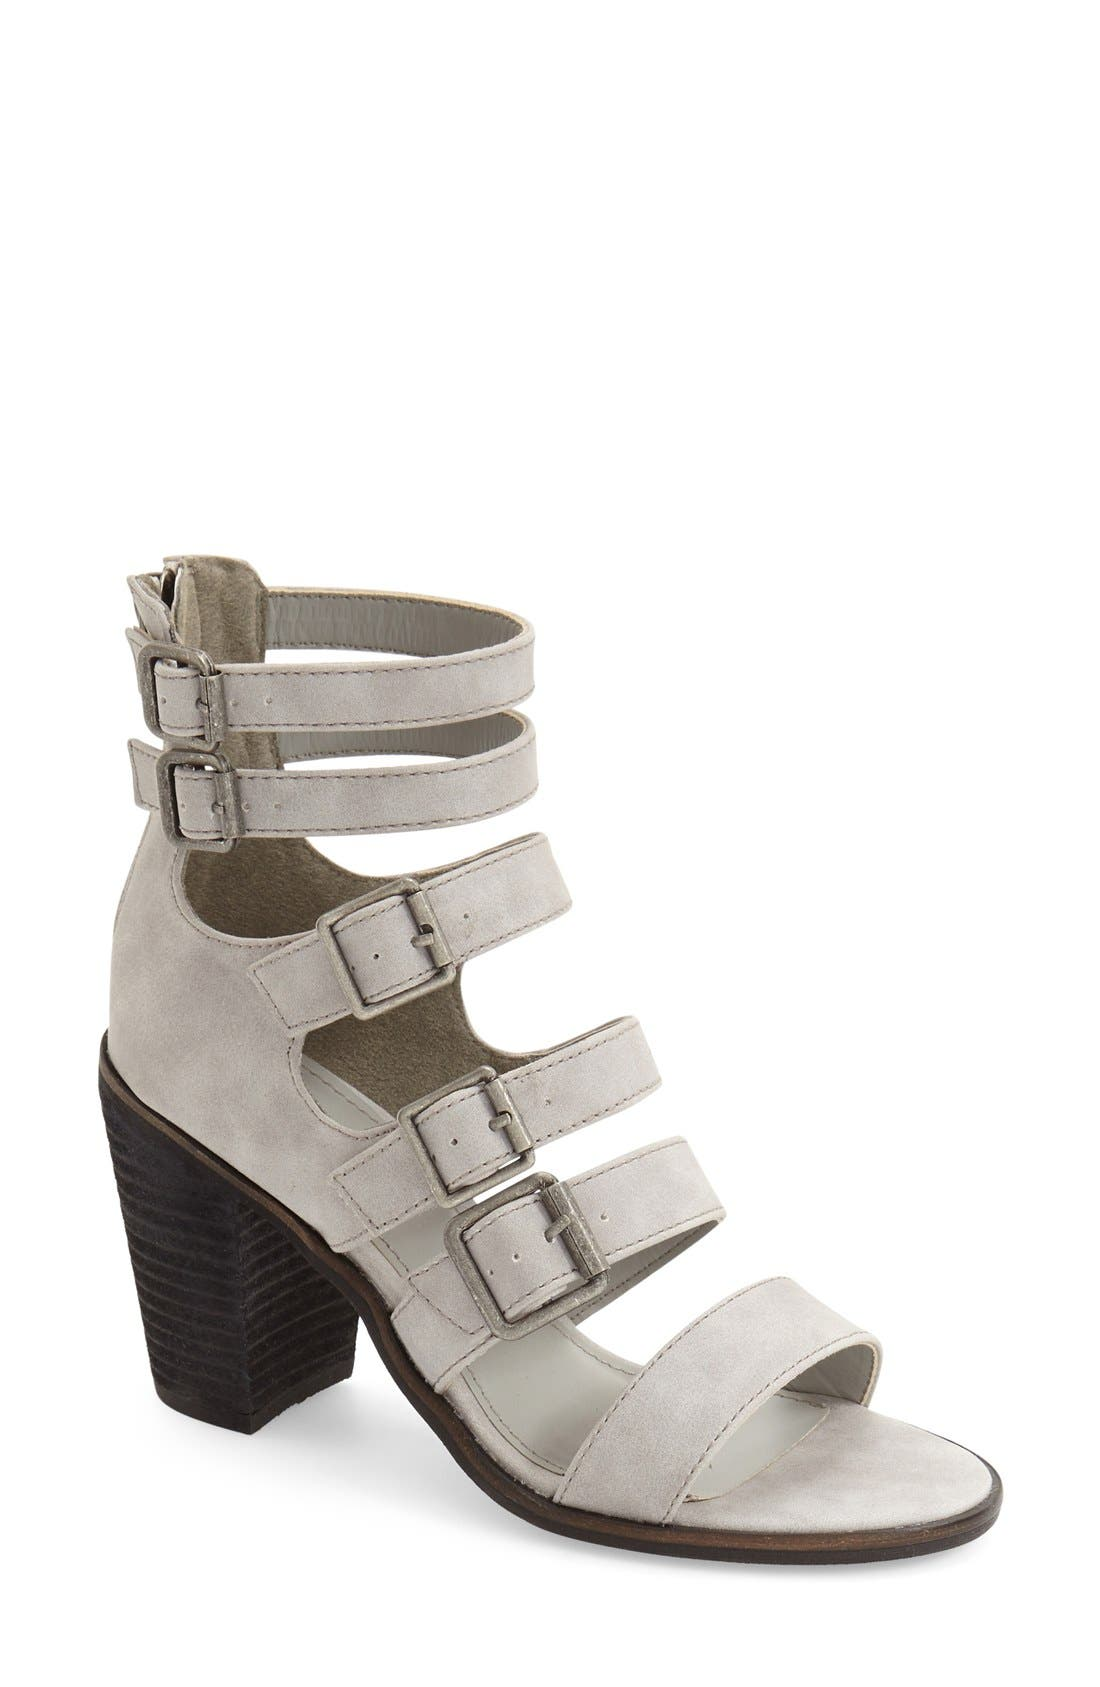 Alternate Image 1 Selected - Rebels 'Yandy' Strappy Block Heel Sandal (Women)